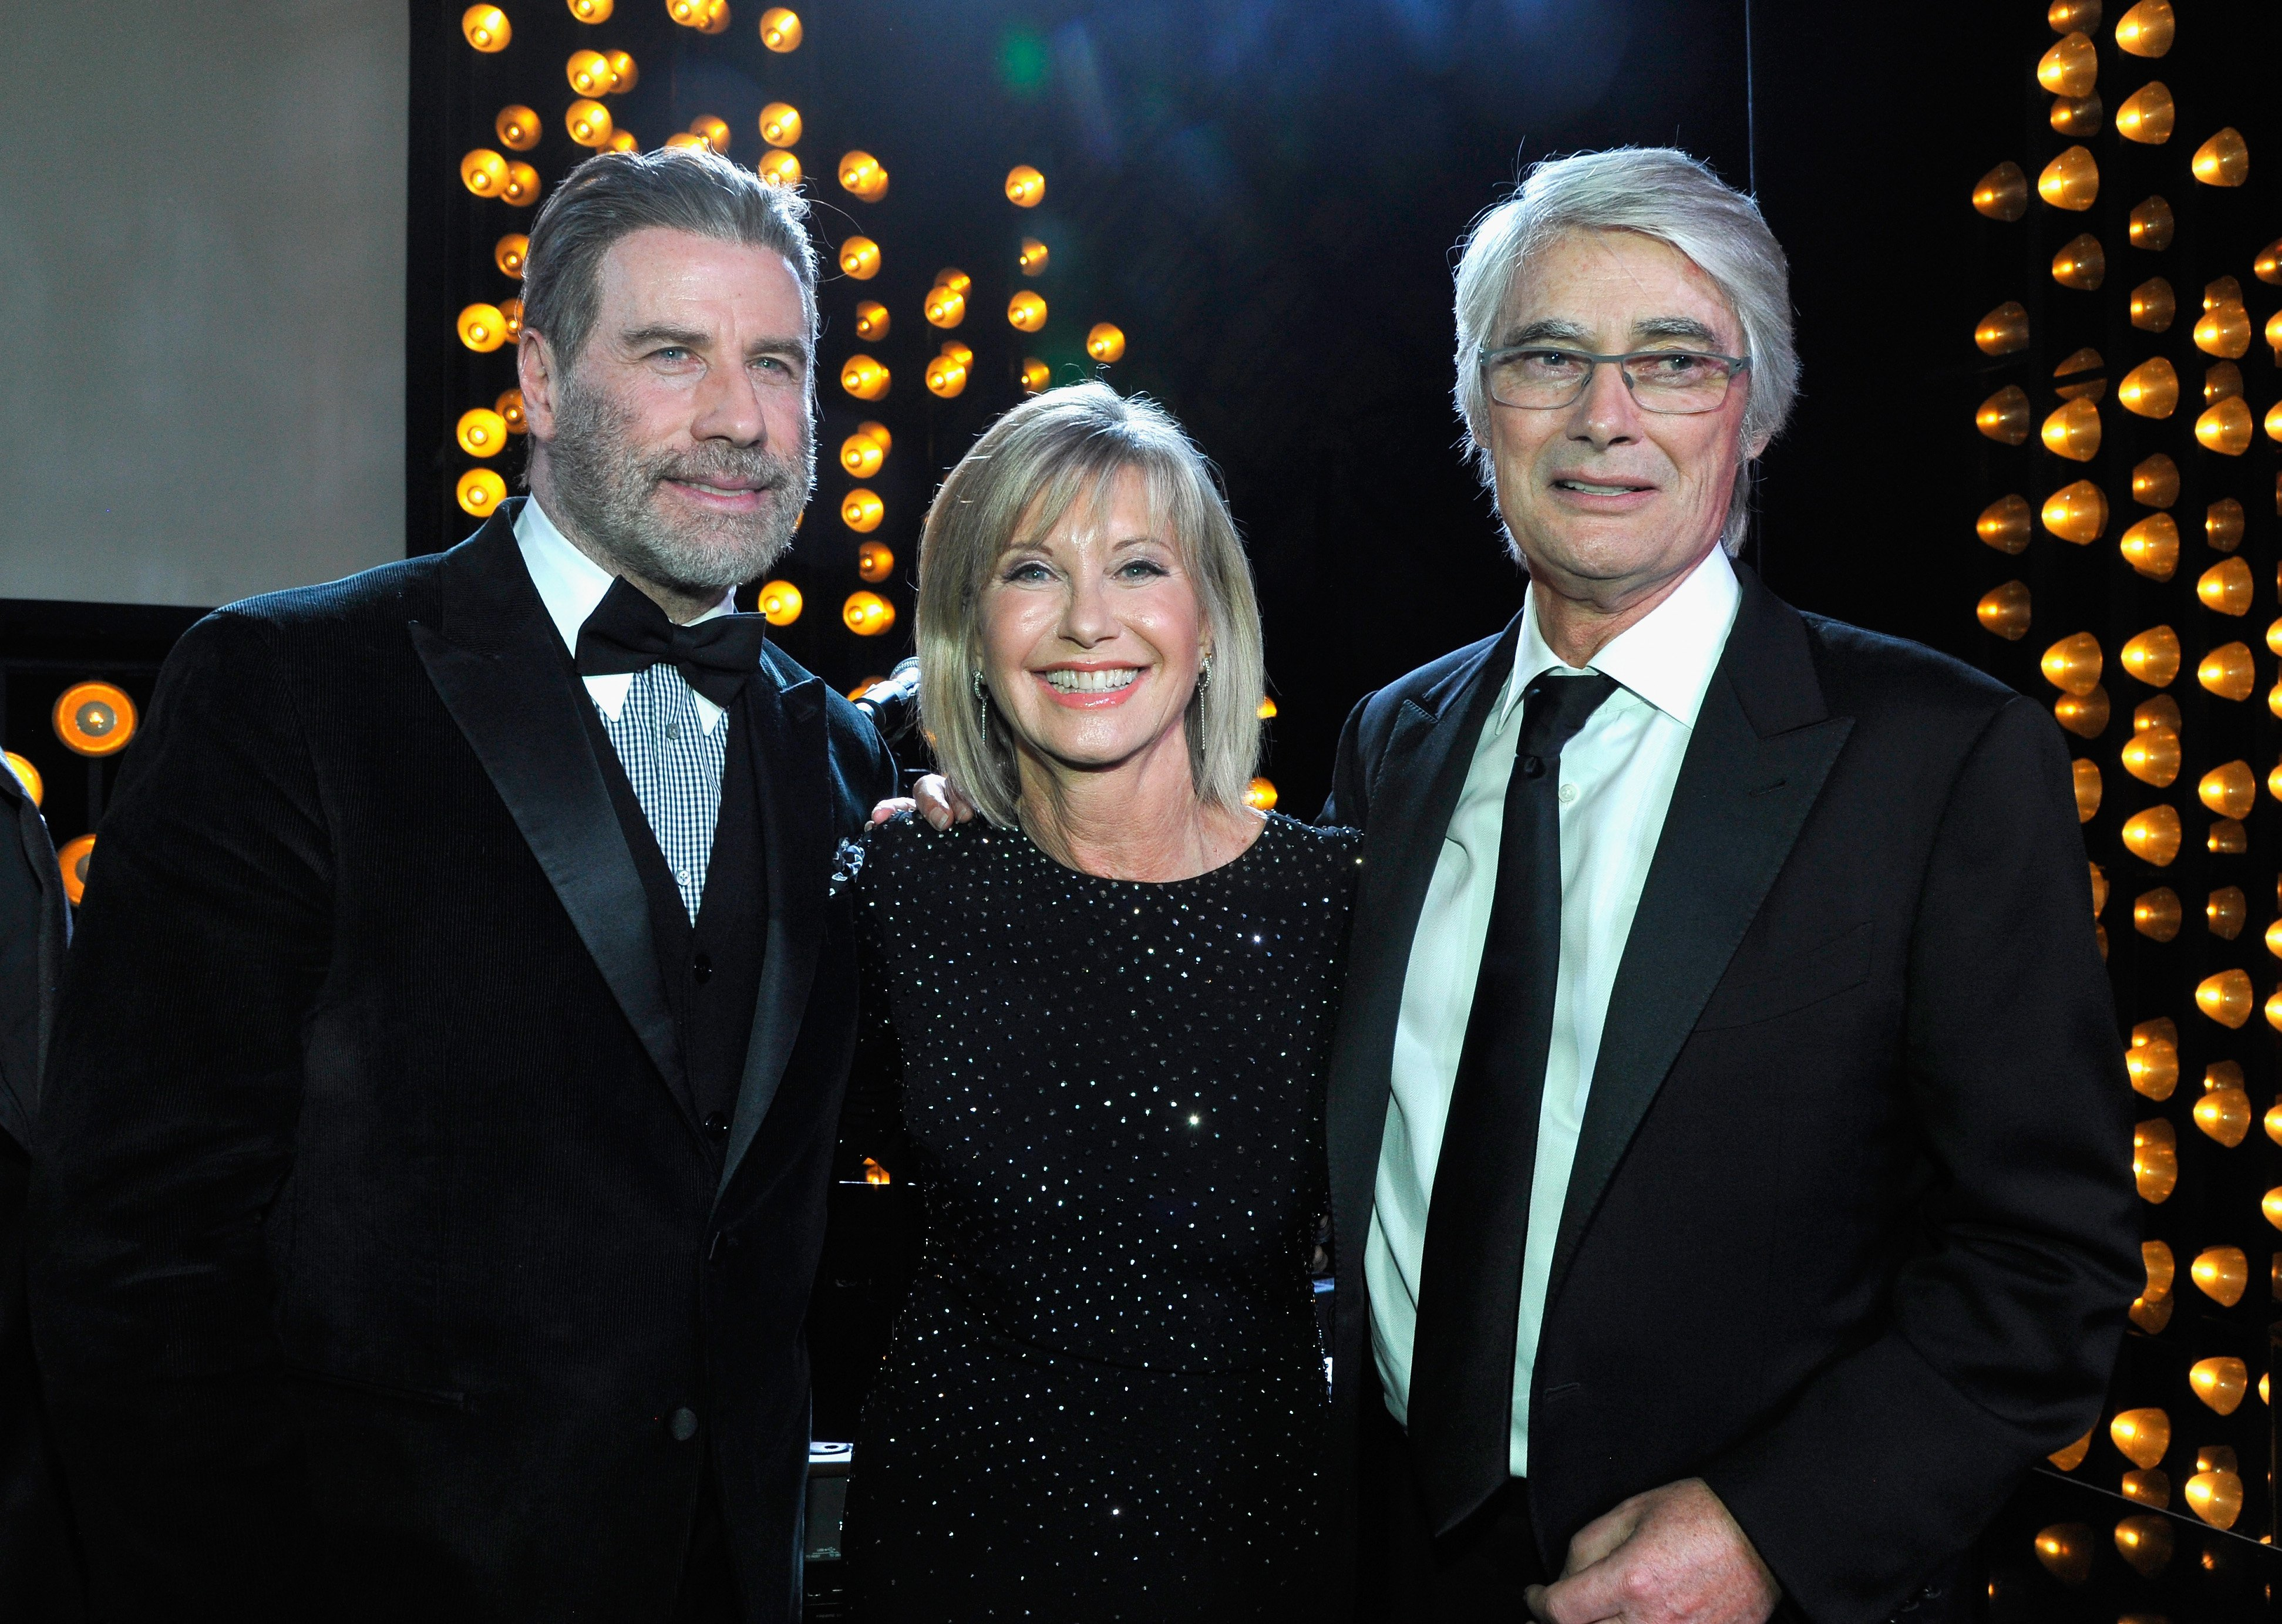 John Travolta, Olivia Newton John, and Honoree John Farrar attend the 2018 G'Day USA Black Tie Gala on January 27, 2018, in Los Angeles, California. | Source: Getty Images.